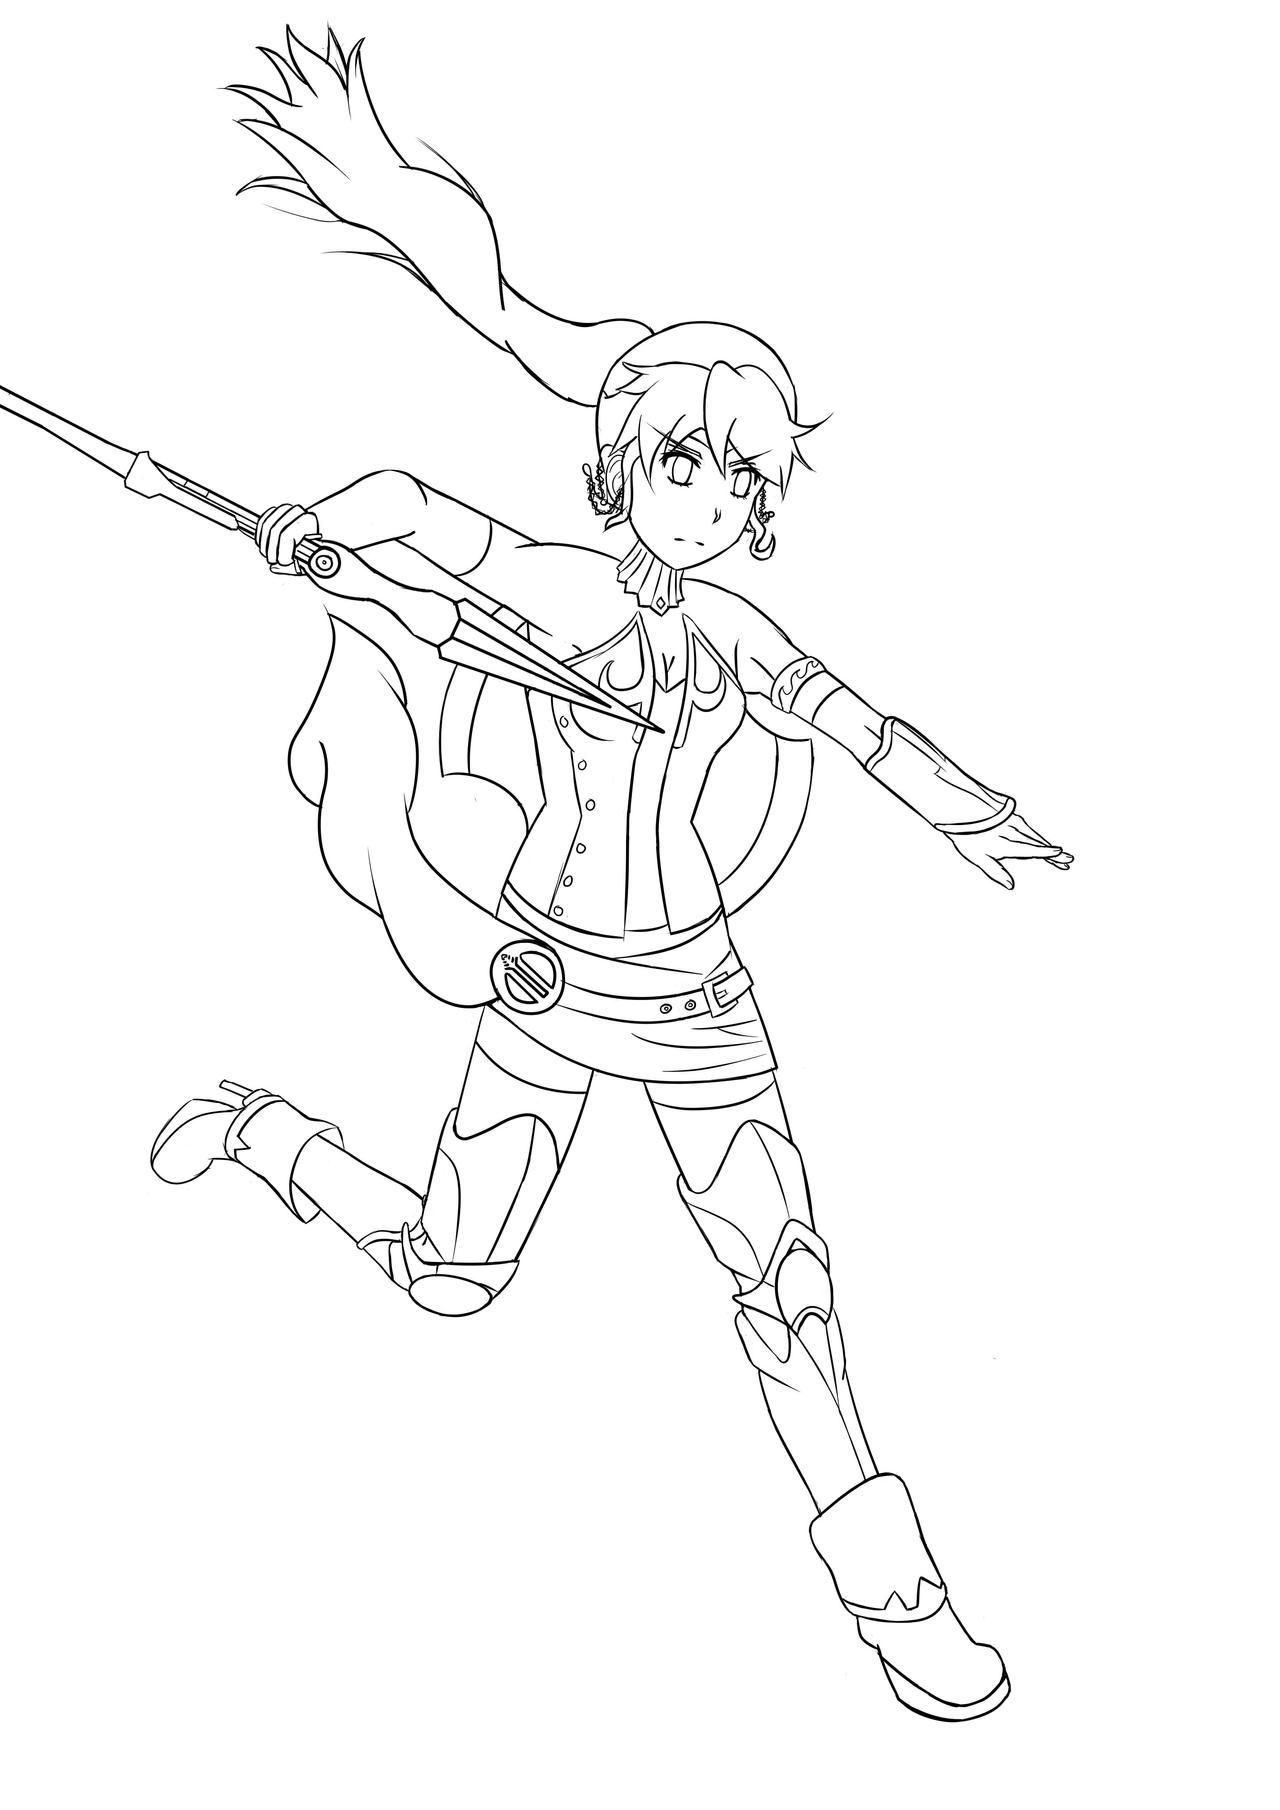 Line Art Practice : Pyrrha practice line art by yoyo on deviantart